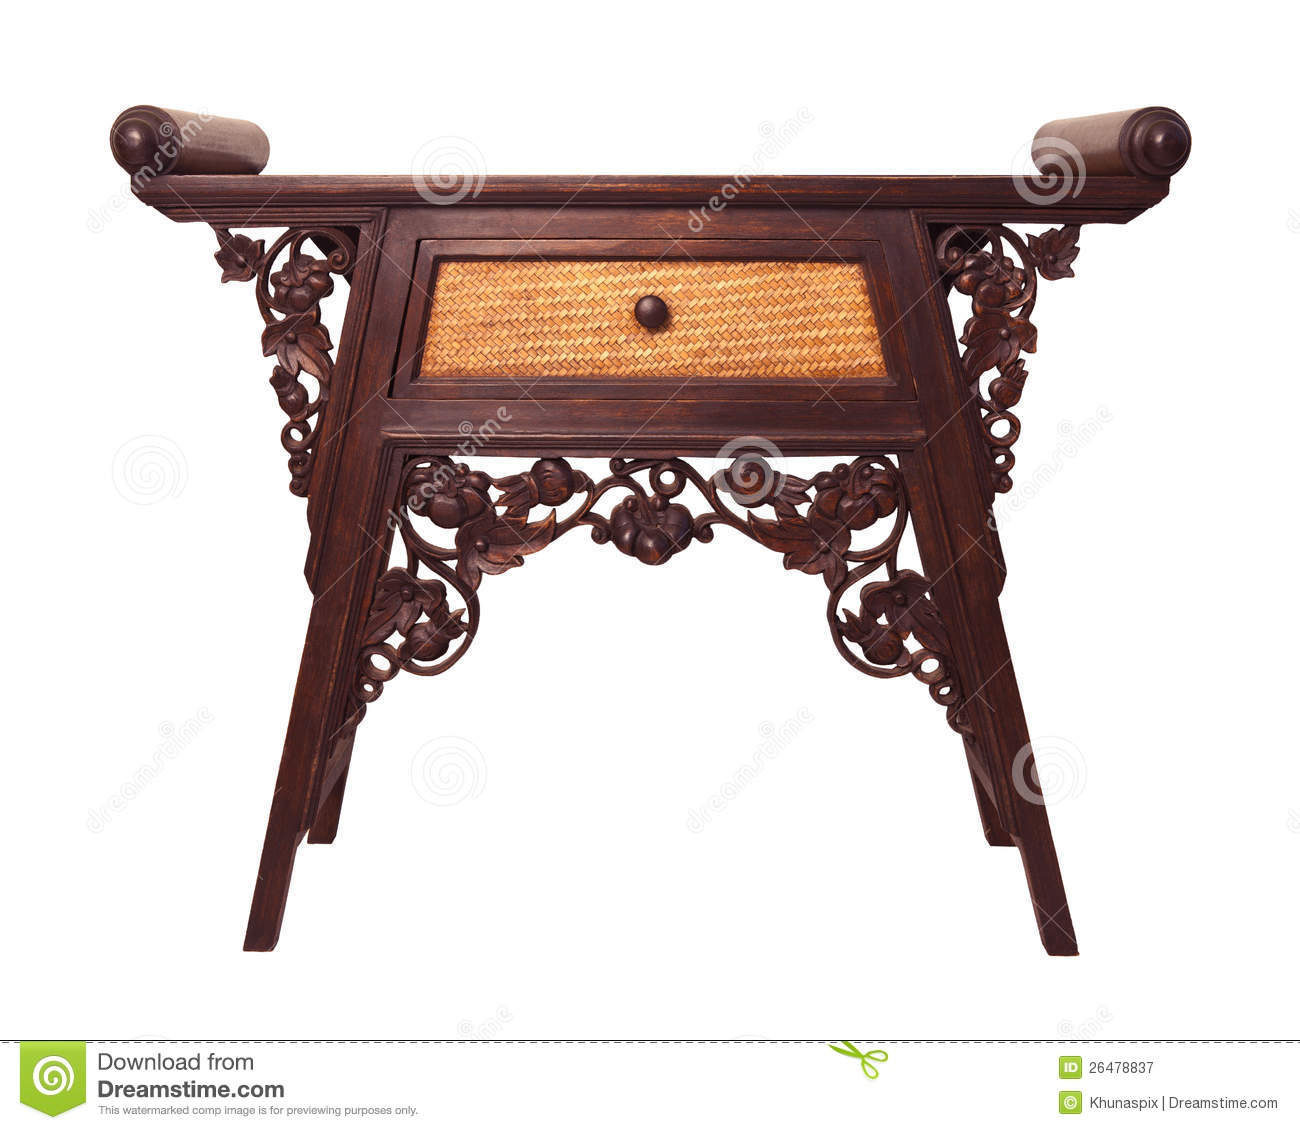 Old Thai Wood Furniture Desk Isolated White Royalty Free Stock Photography Image 26478837